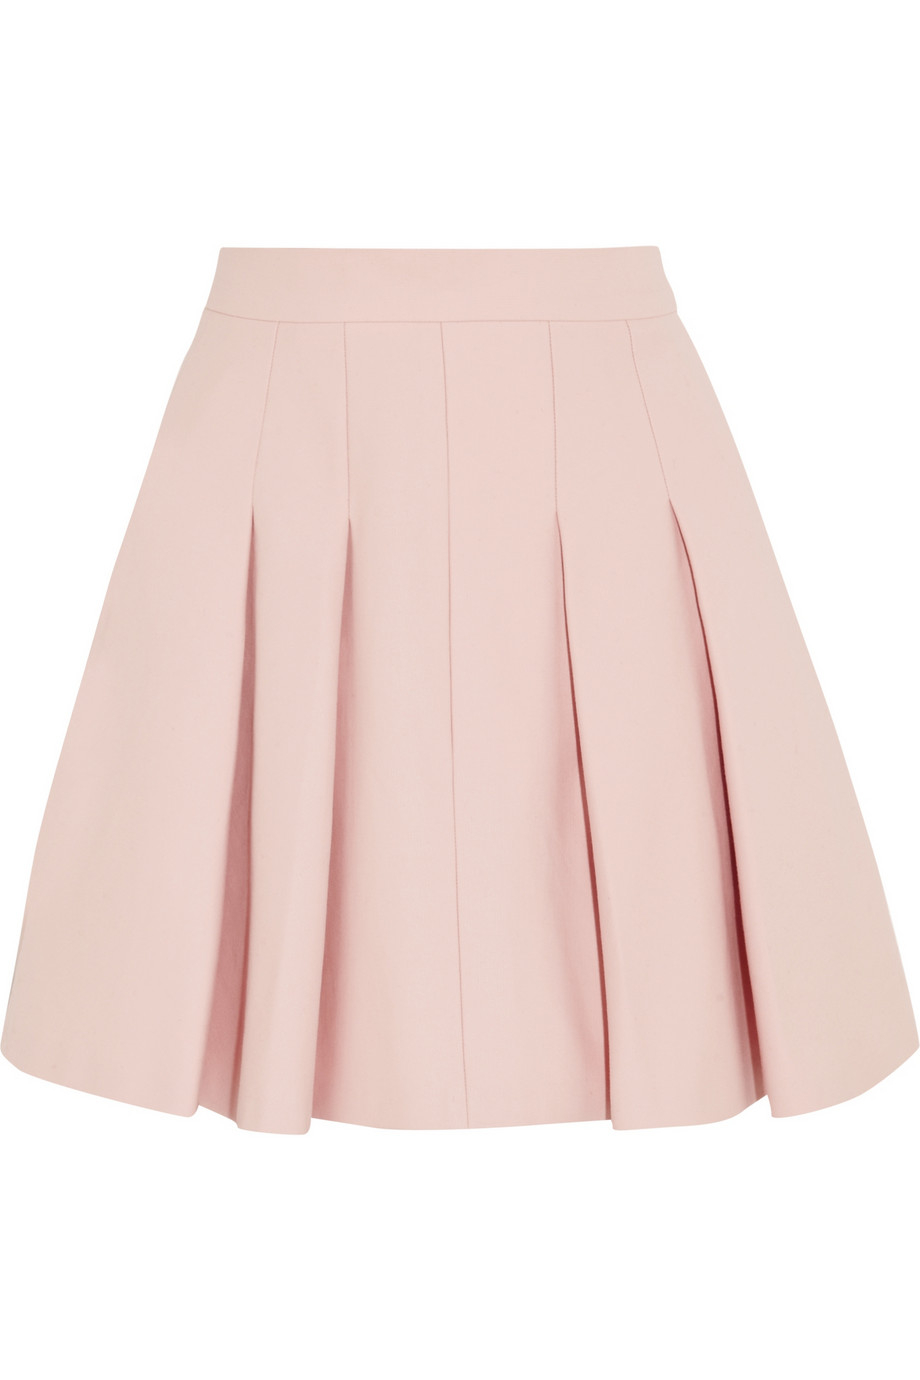 Red valentino Pleated Stretch-Cotton Mini Skirt in Pink | Lyst